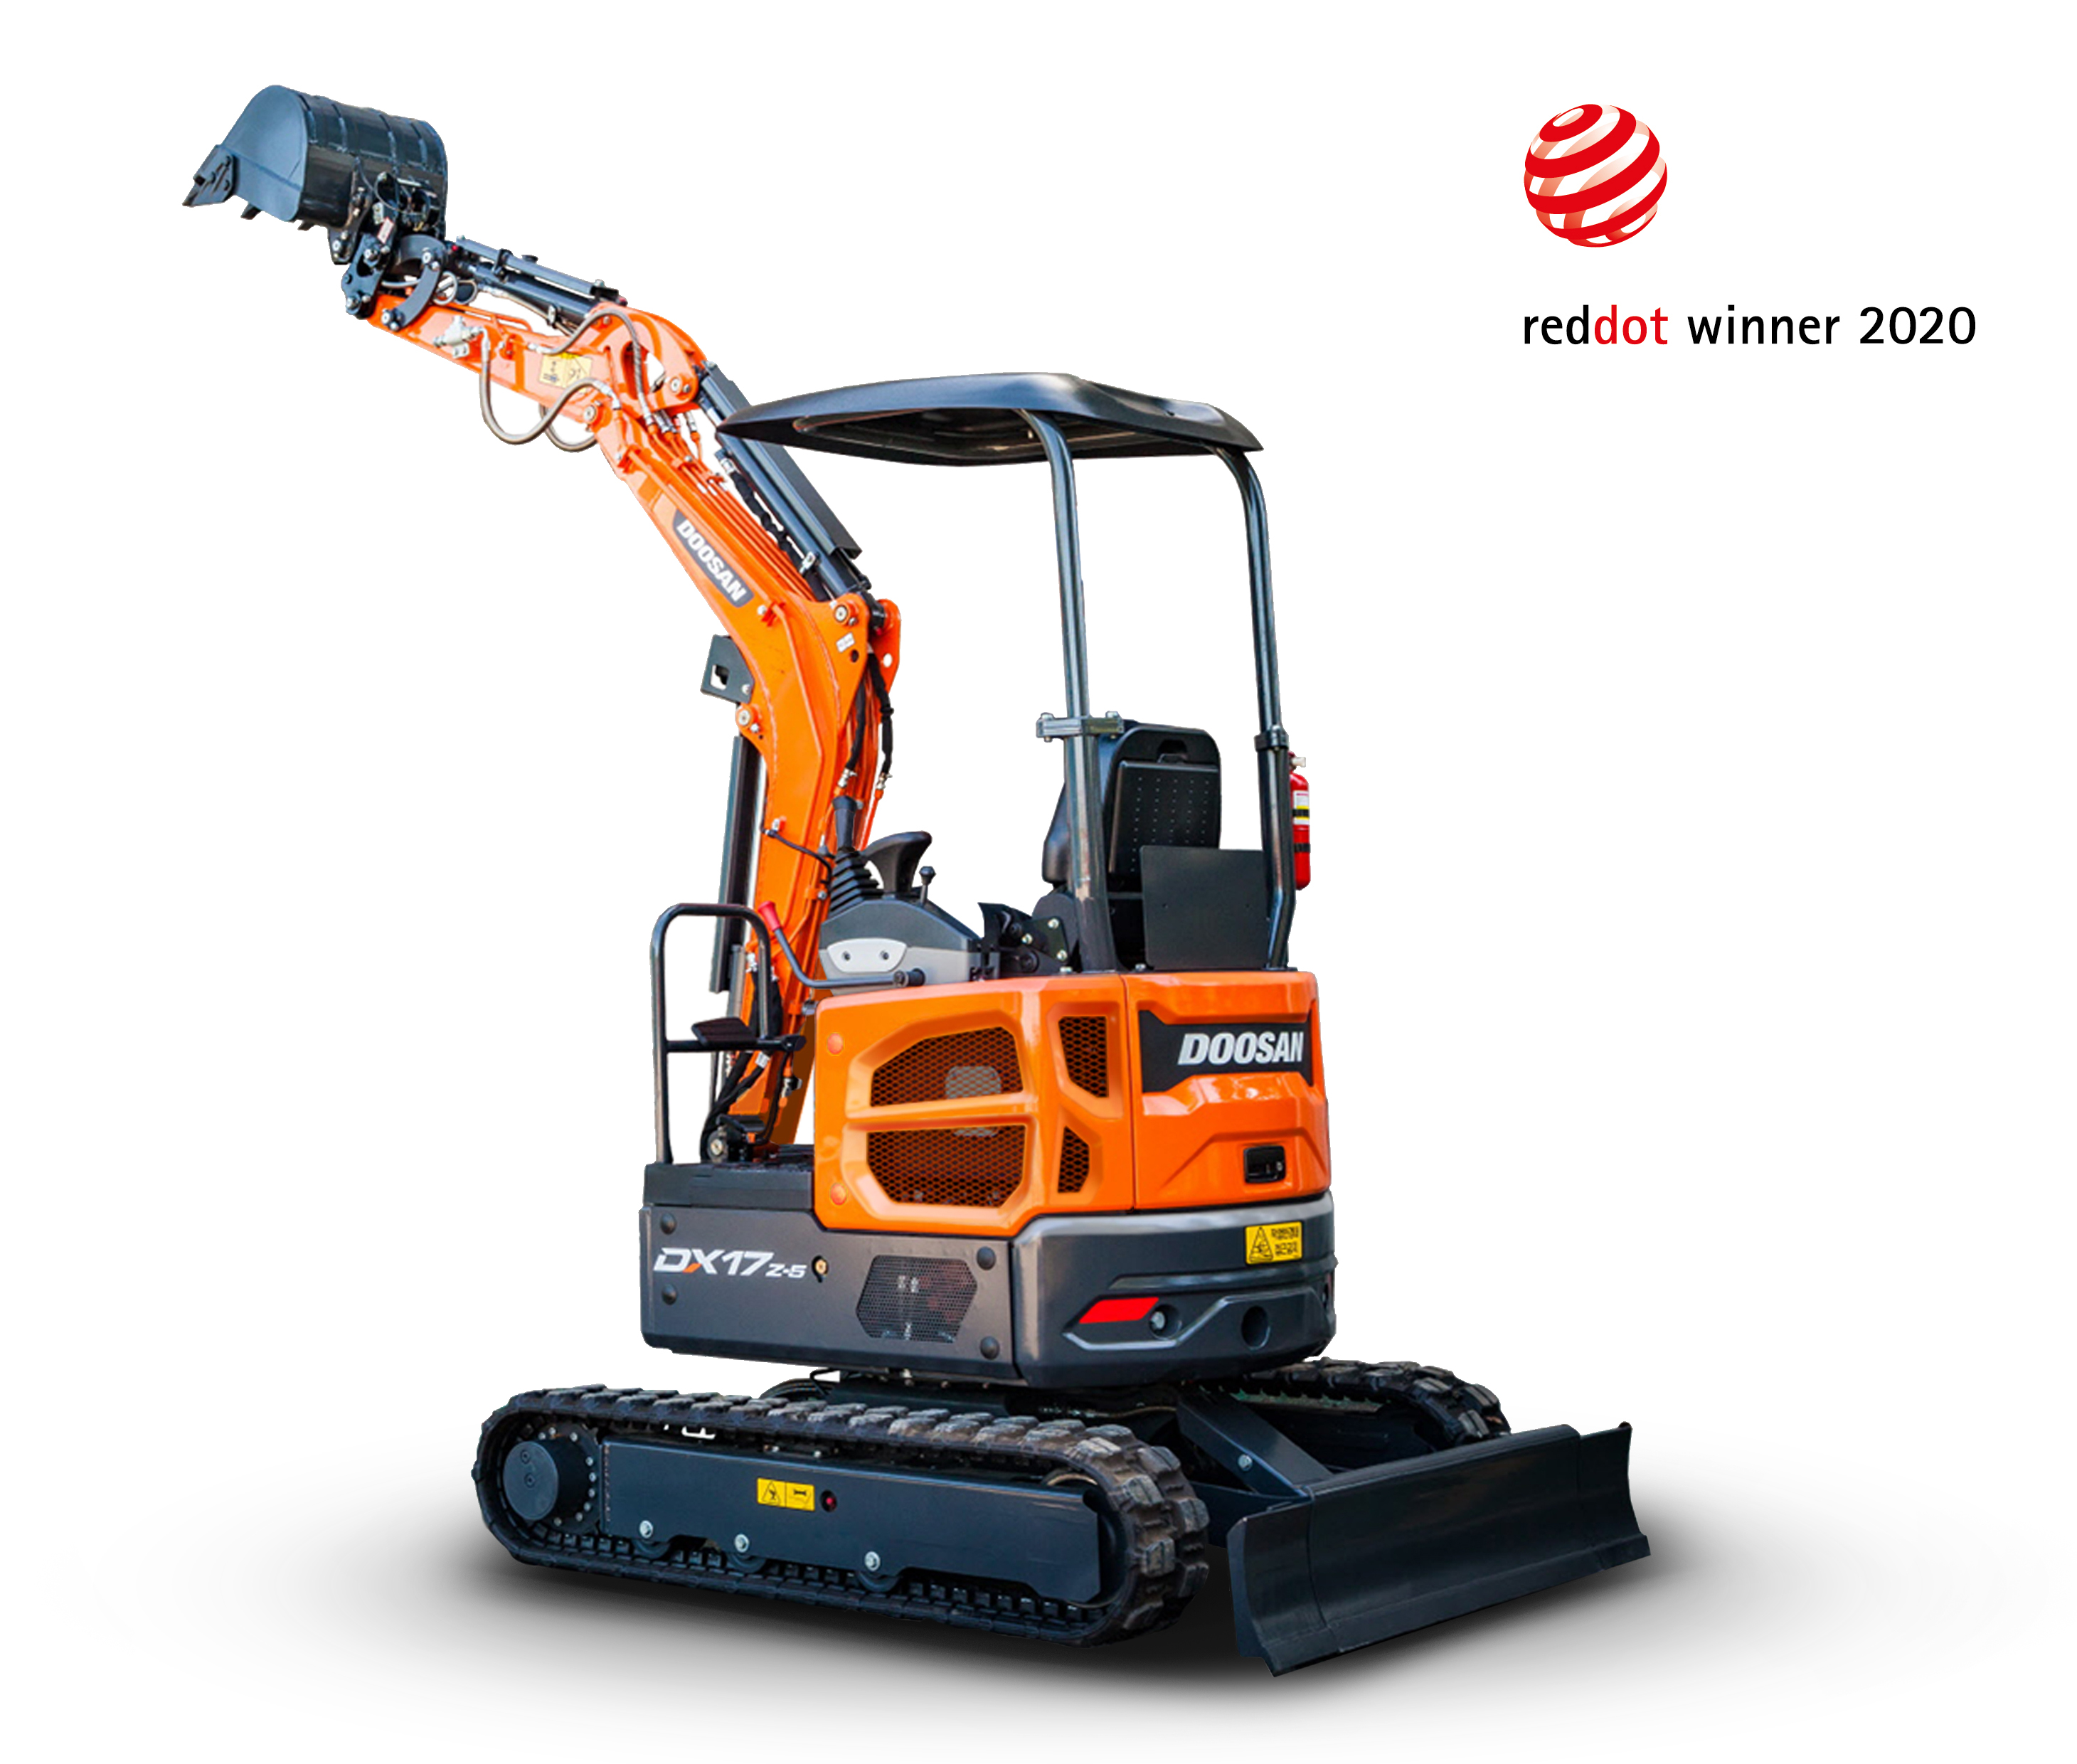 The DX17z-5 model has been recognized for its outstanding competitiveness in design, as well winning the 2020 Red Dot Design Award and the 2019 Pin Up Design Award.